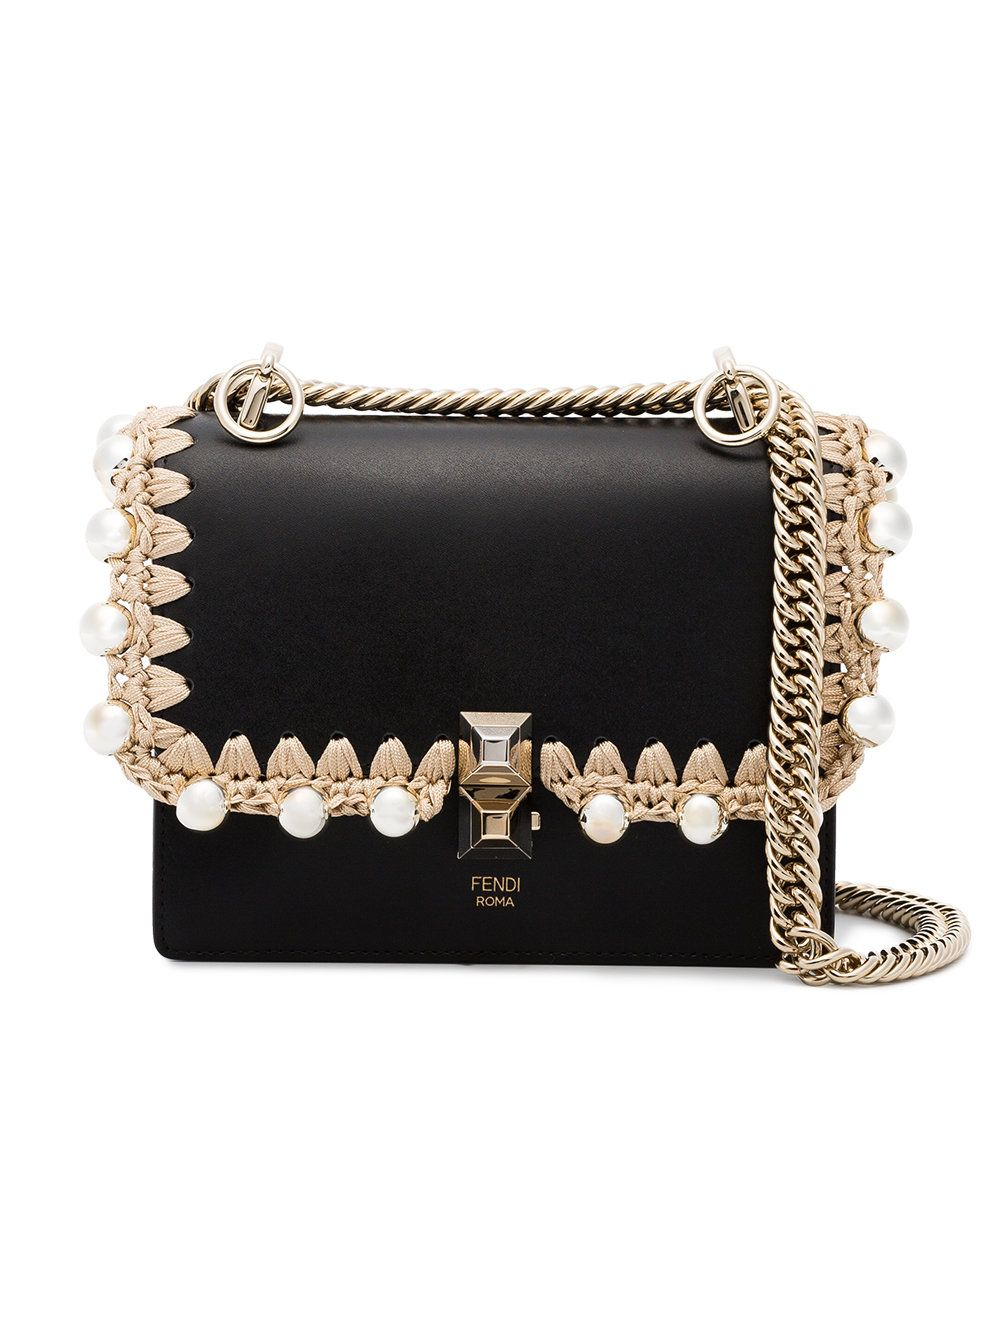 Black Kan I small leather bag with crochet trim Fendi aQzKH